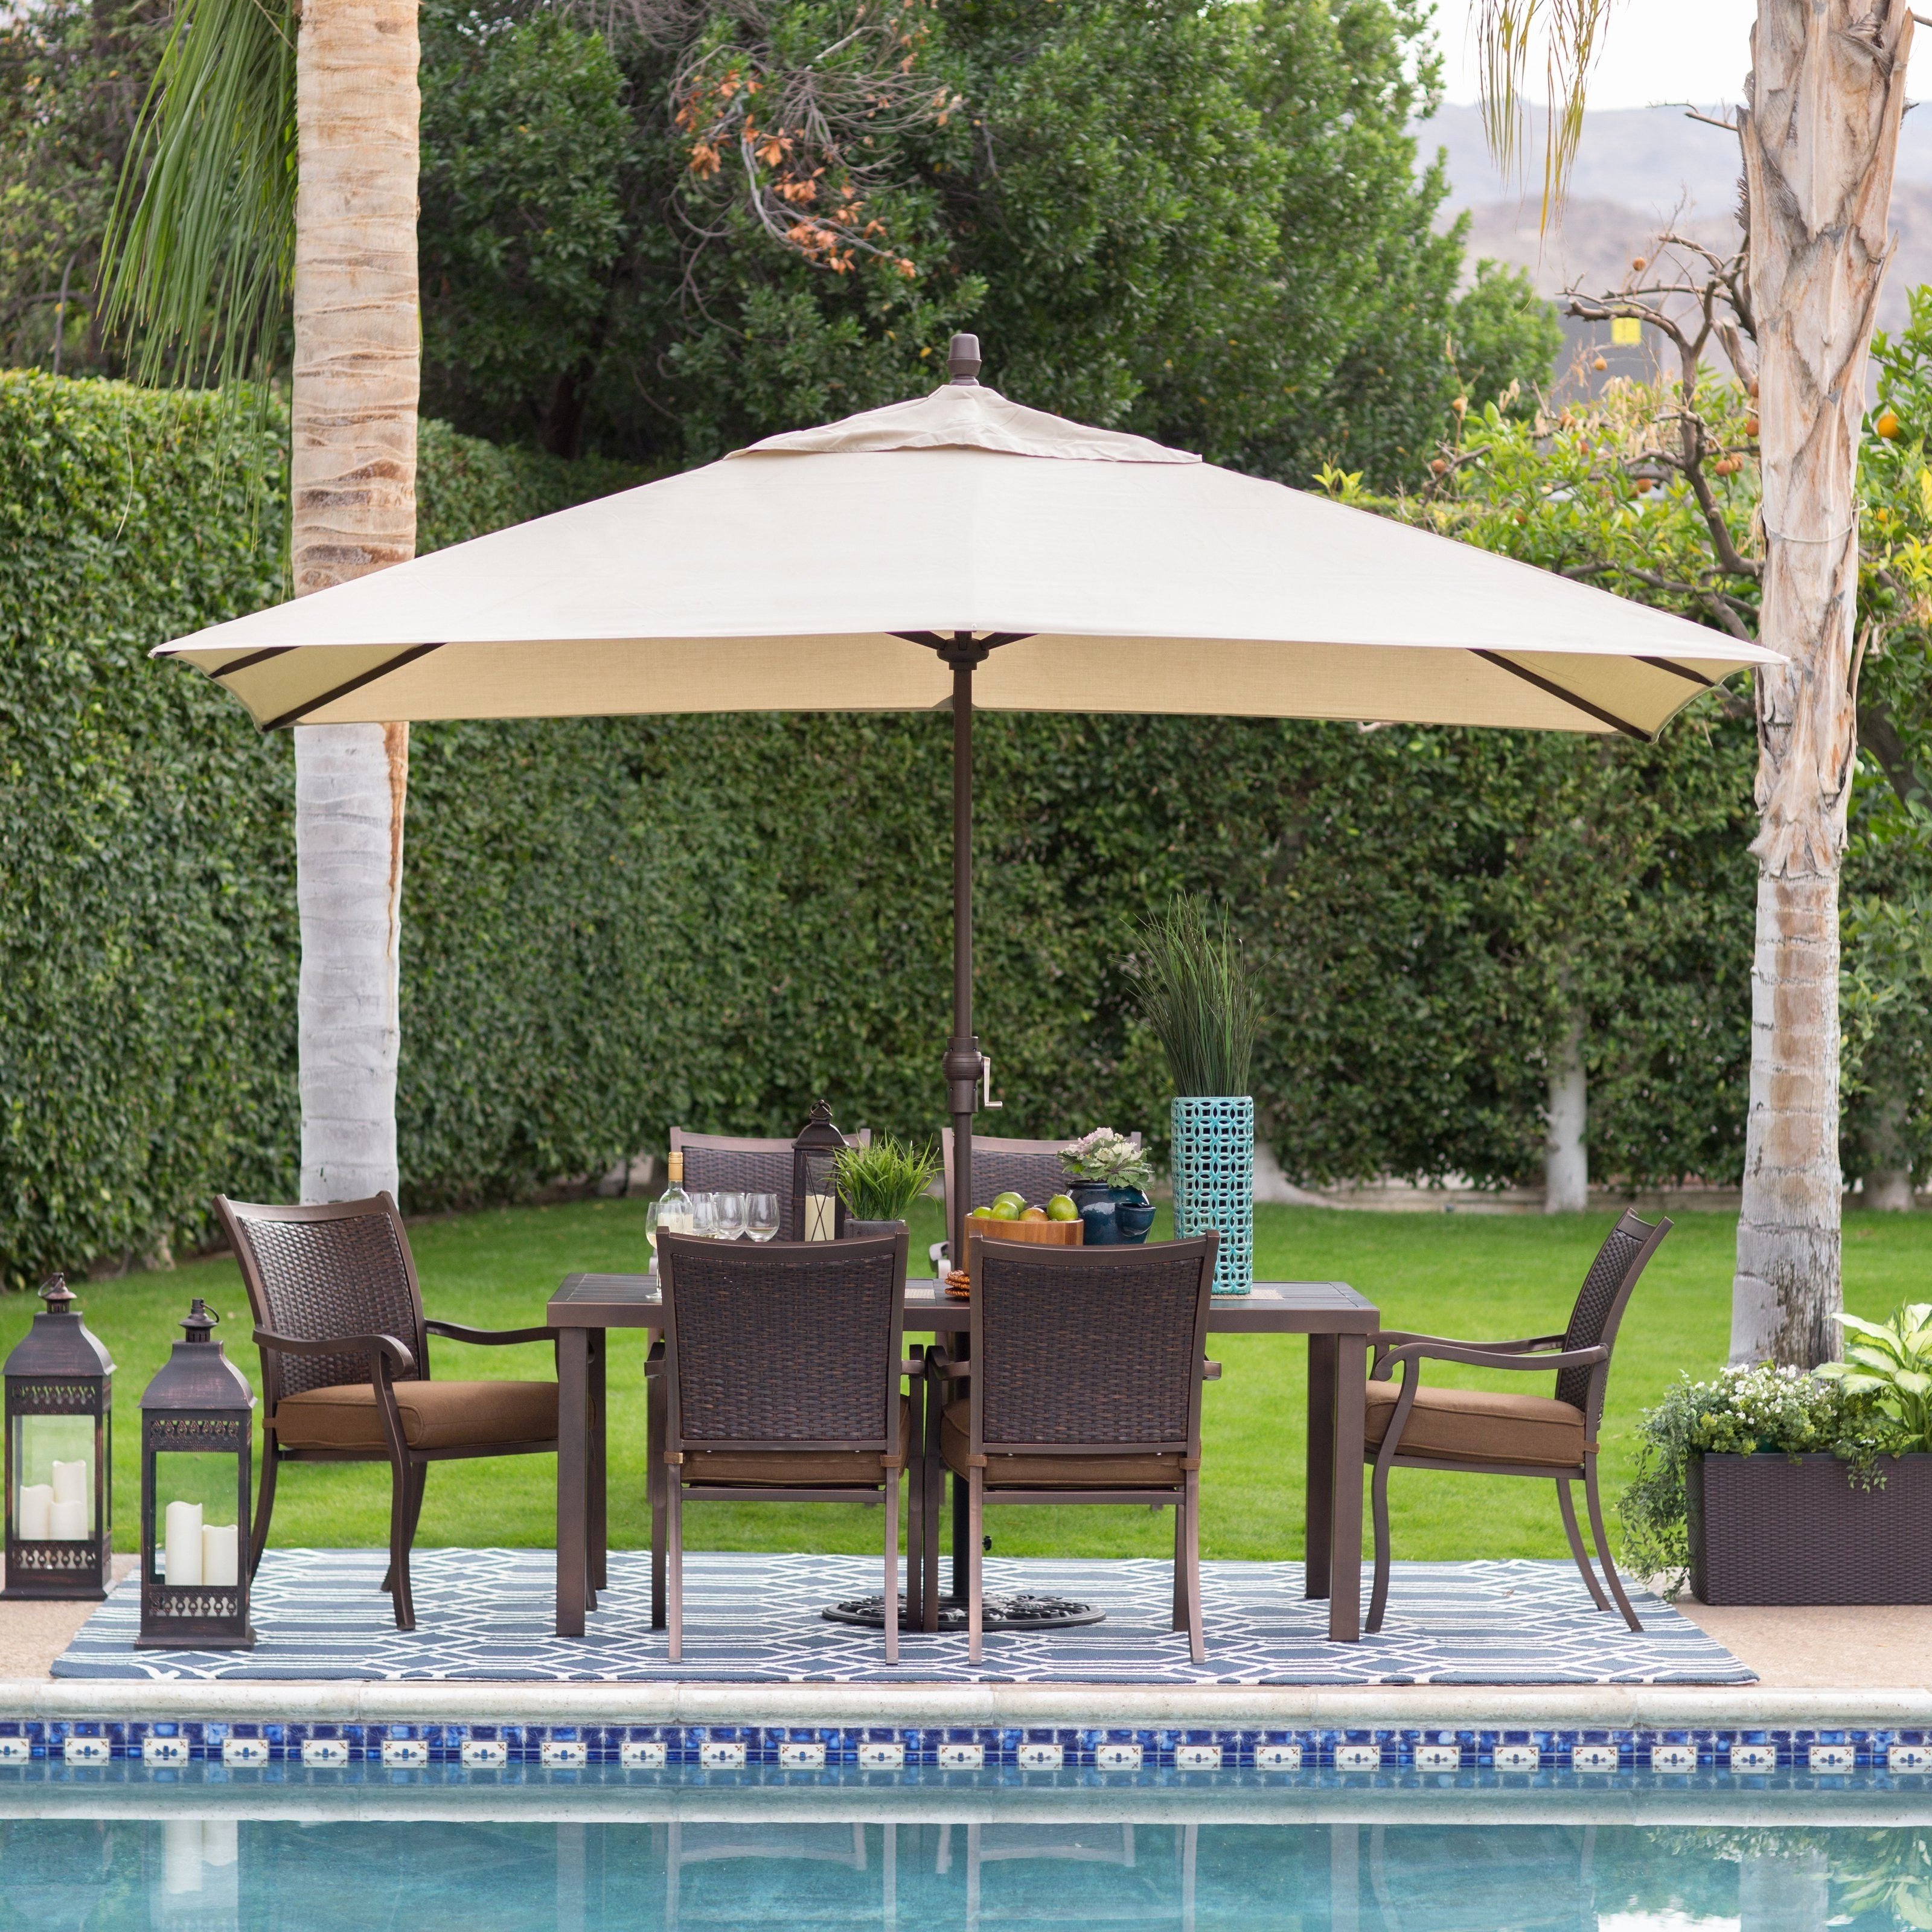 Trendy 11 Cantilever Patio Umbrella With Base Unique 30 Fresh 11 Ft Patio Intended For 11 Ft Patio Umbrellas (View 19 of 20)